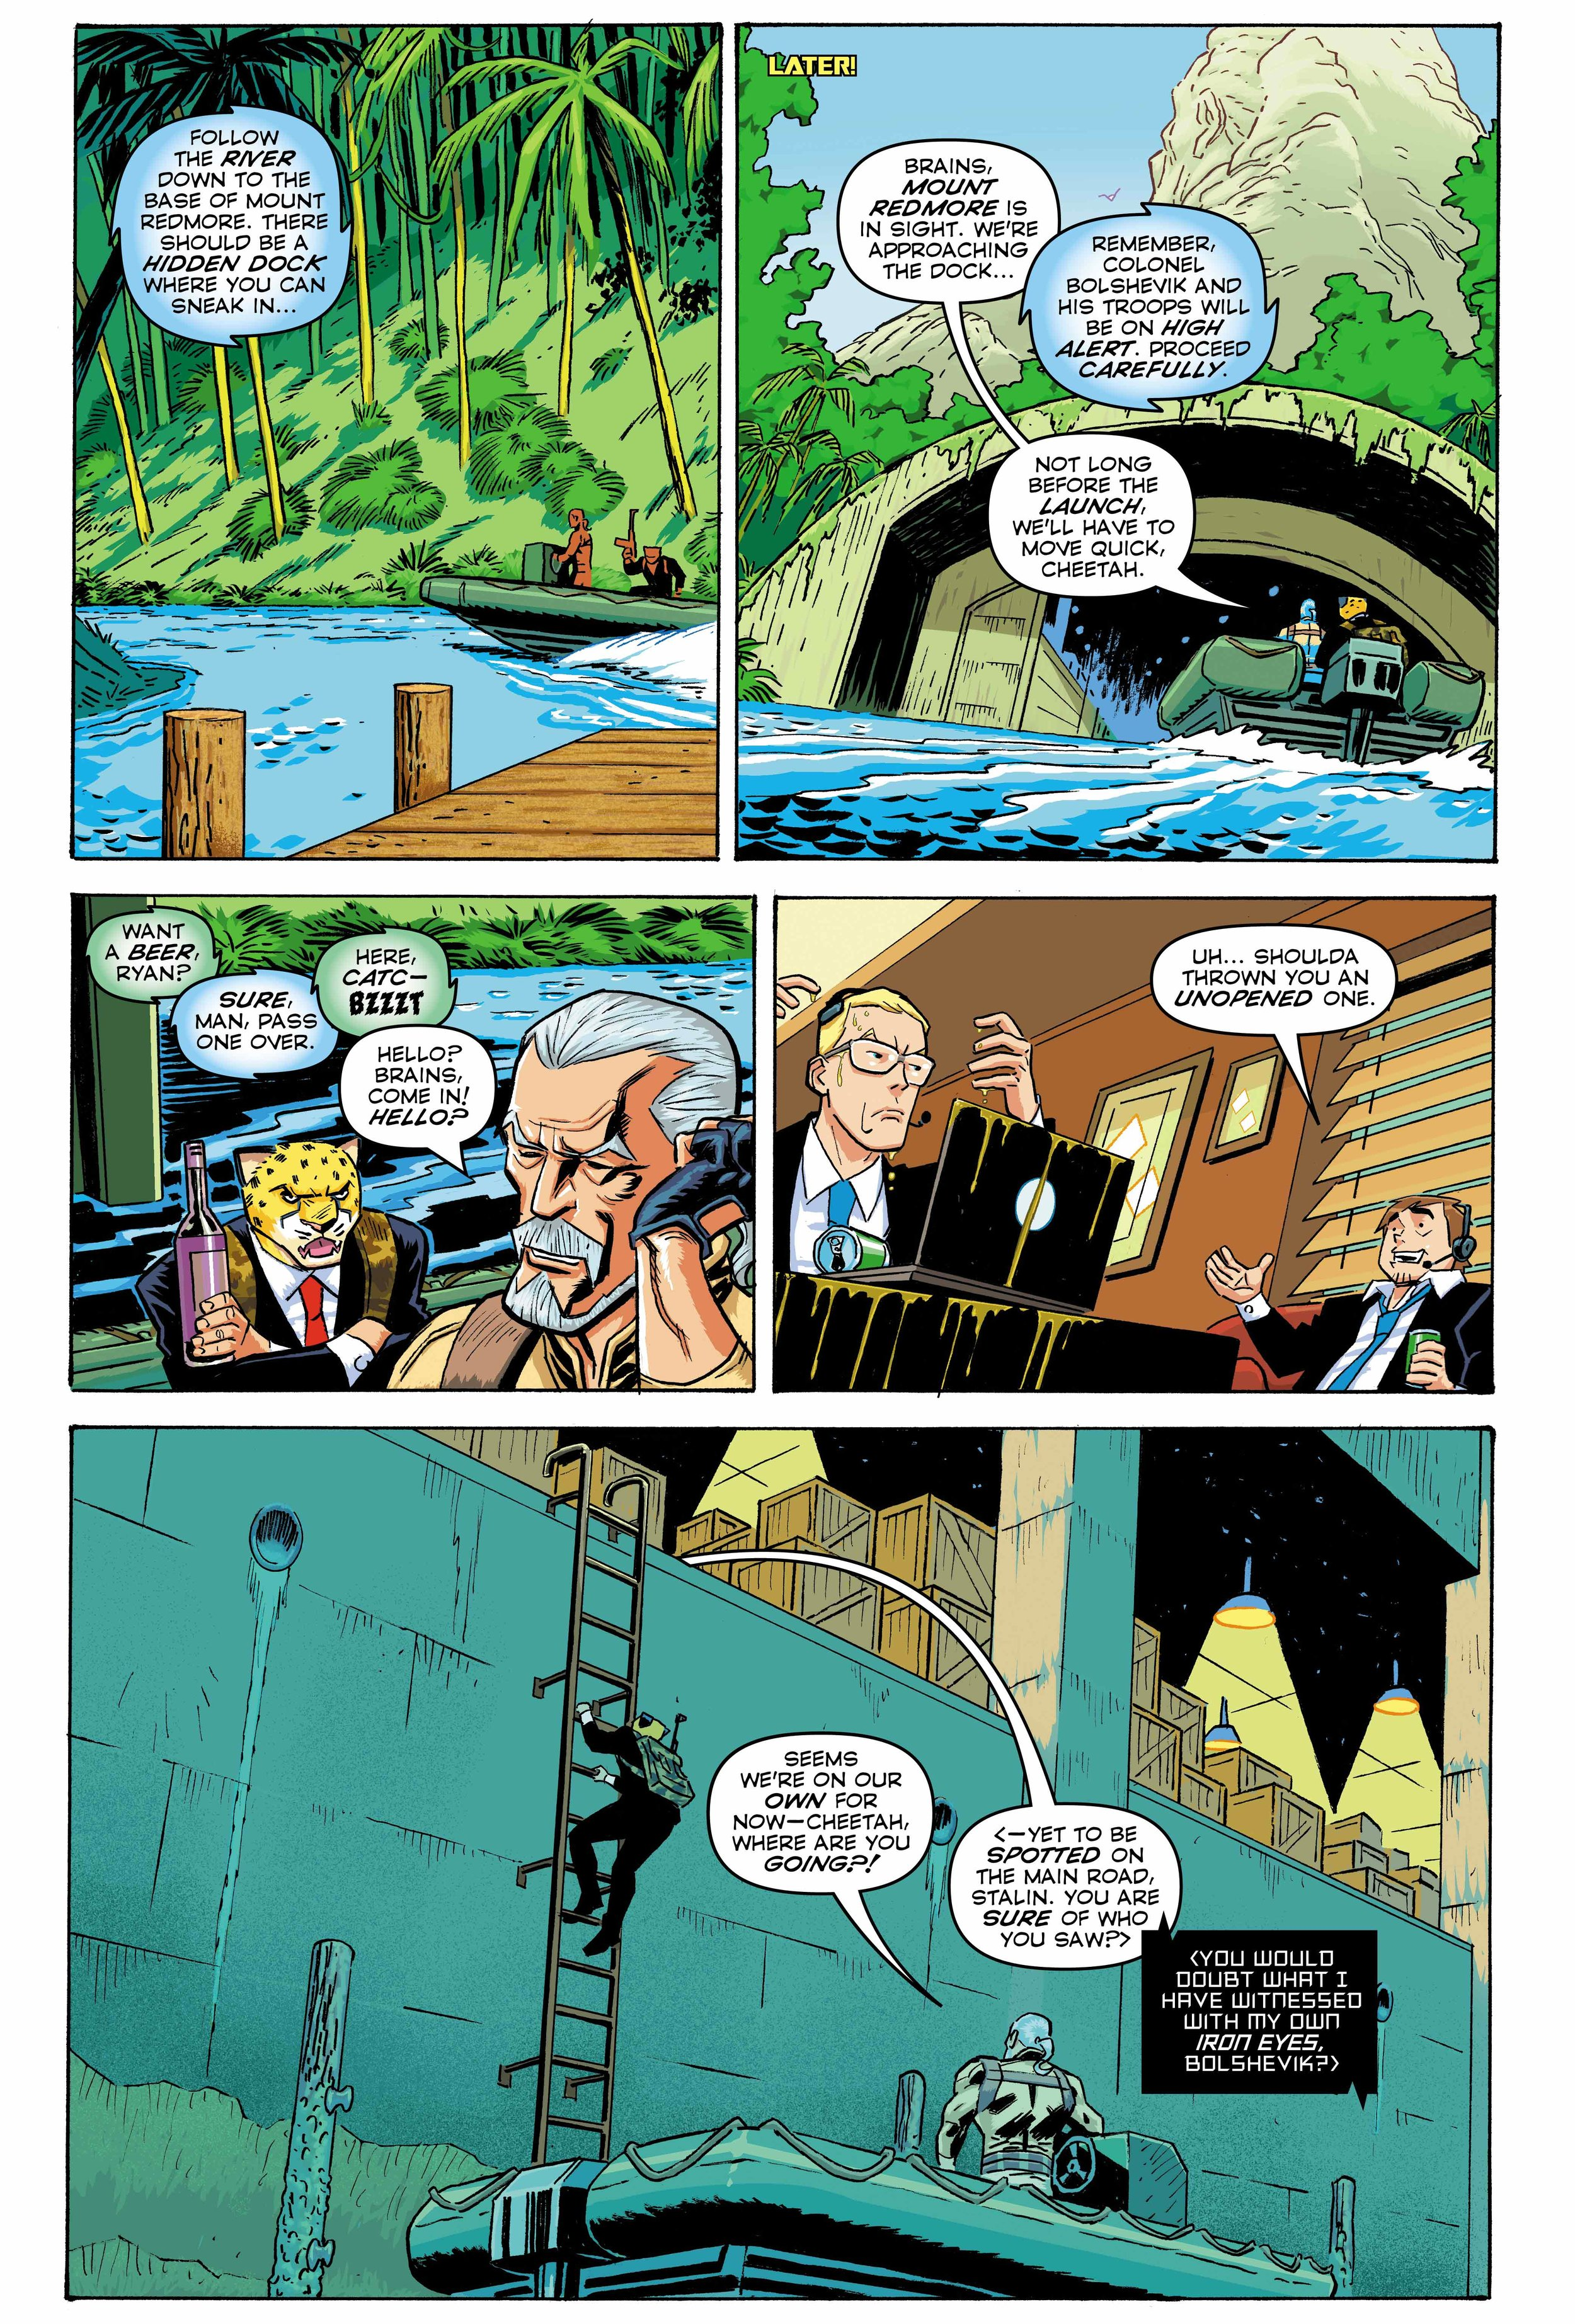 Time Cheetah - The Secret of Stalin Island Part 1 - Page 24